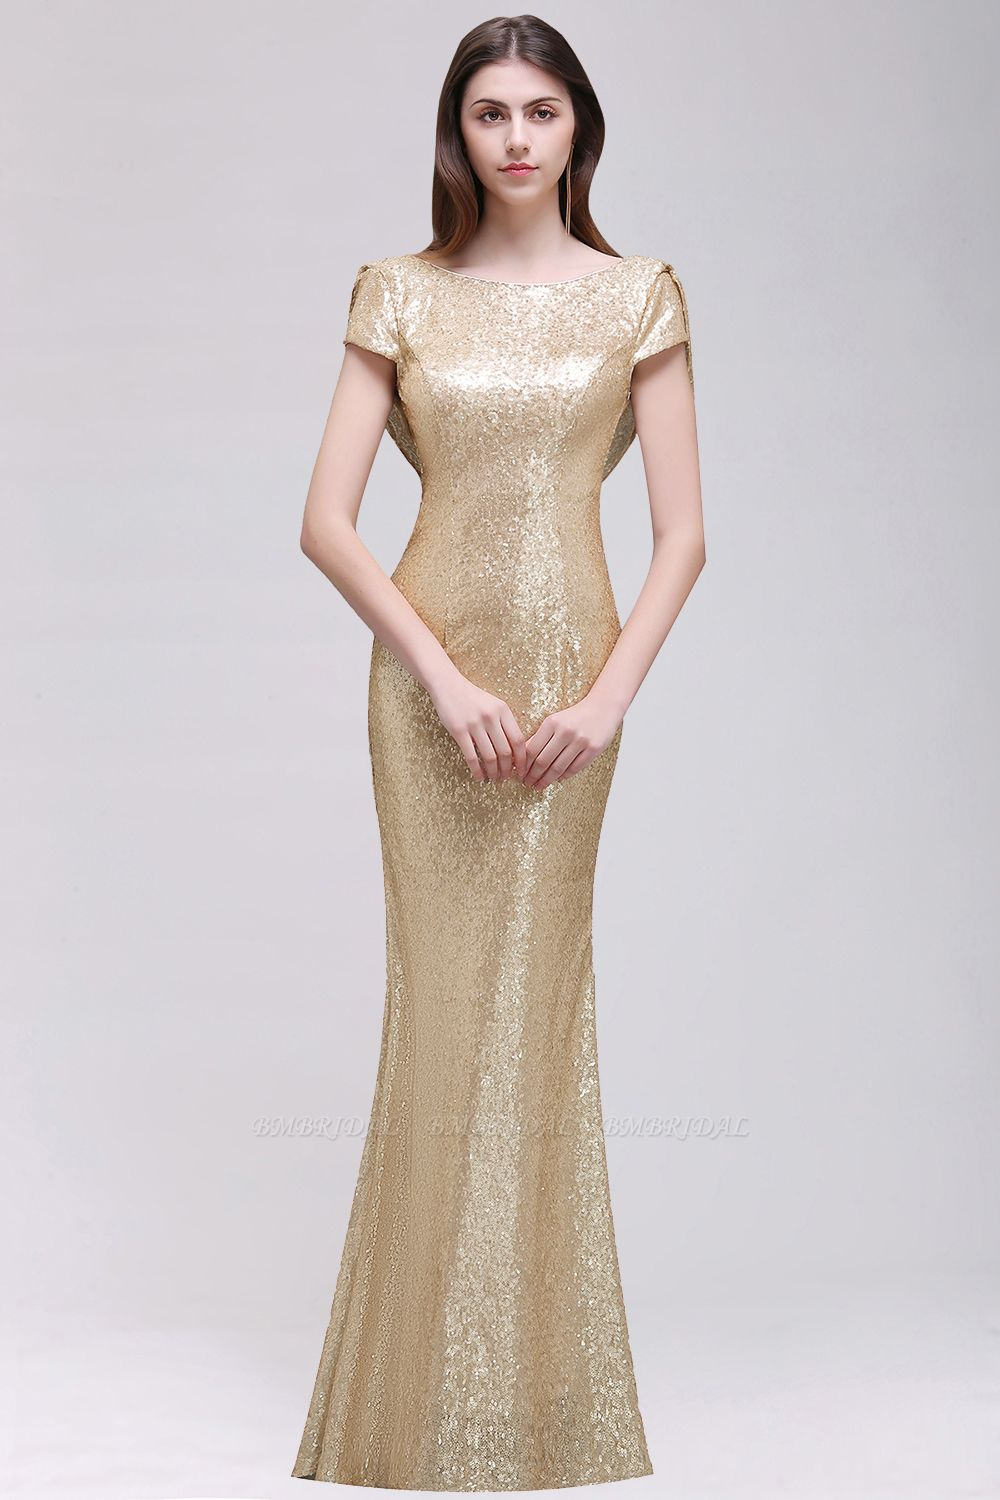 BMbridal Sparkly Sequined Jewel Sheath Prom Dress with Short Sleeves and Draped Back